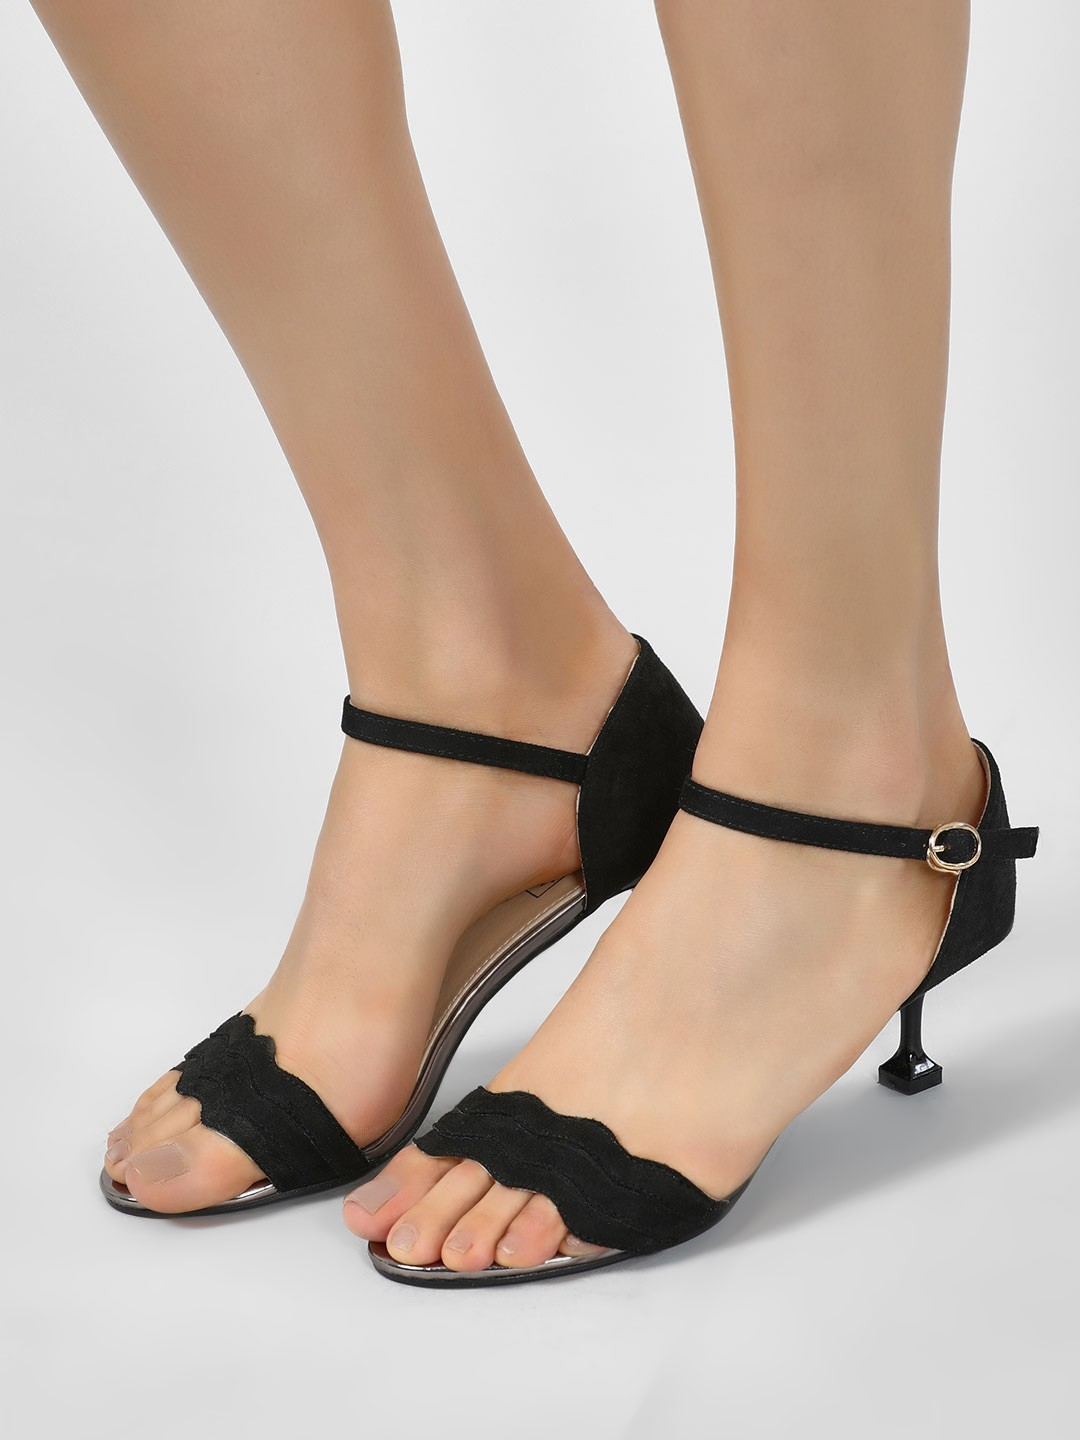 Intoto Black Scalloped Strap Kitten Heel Sandals 1